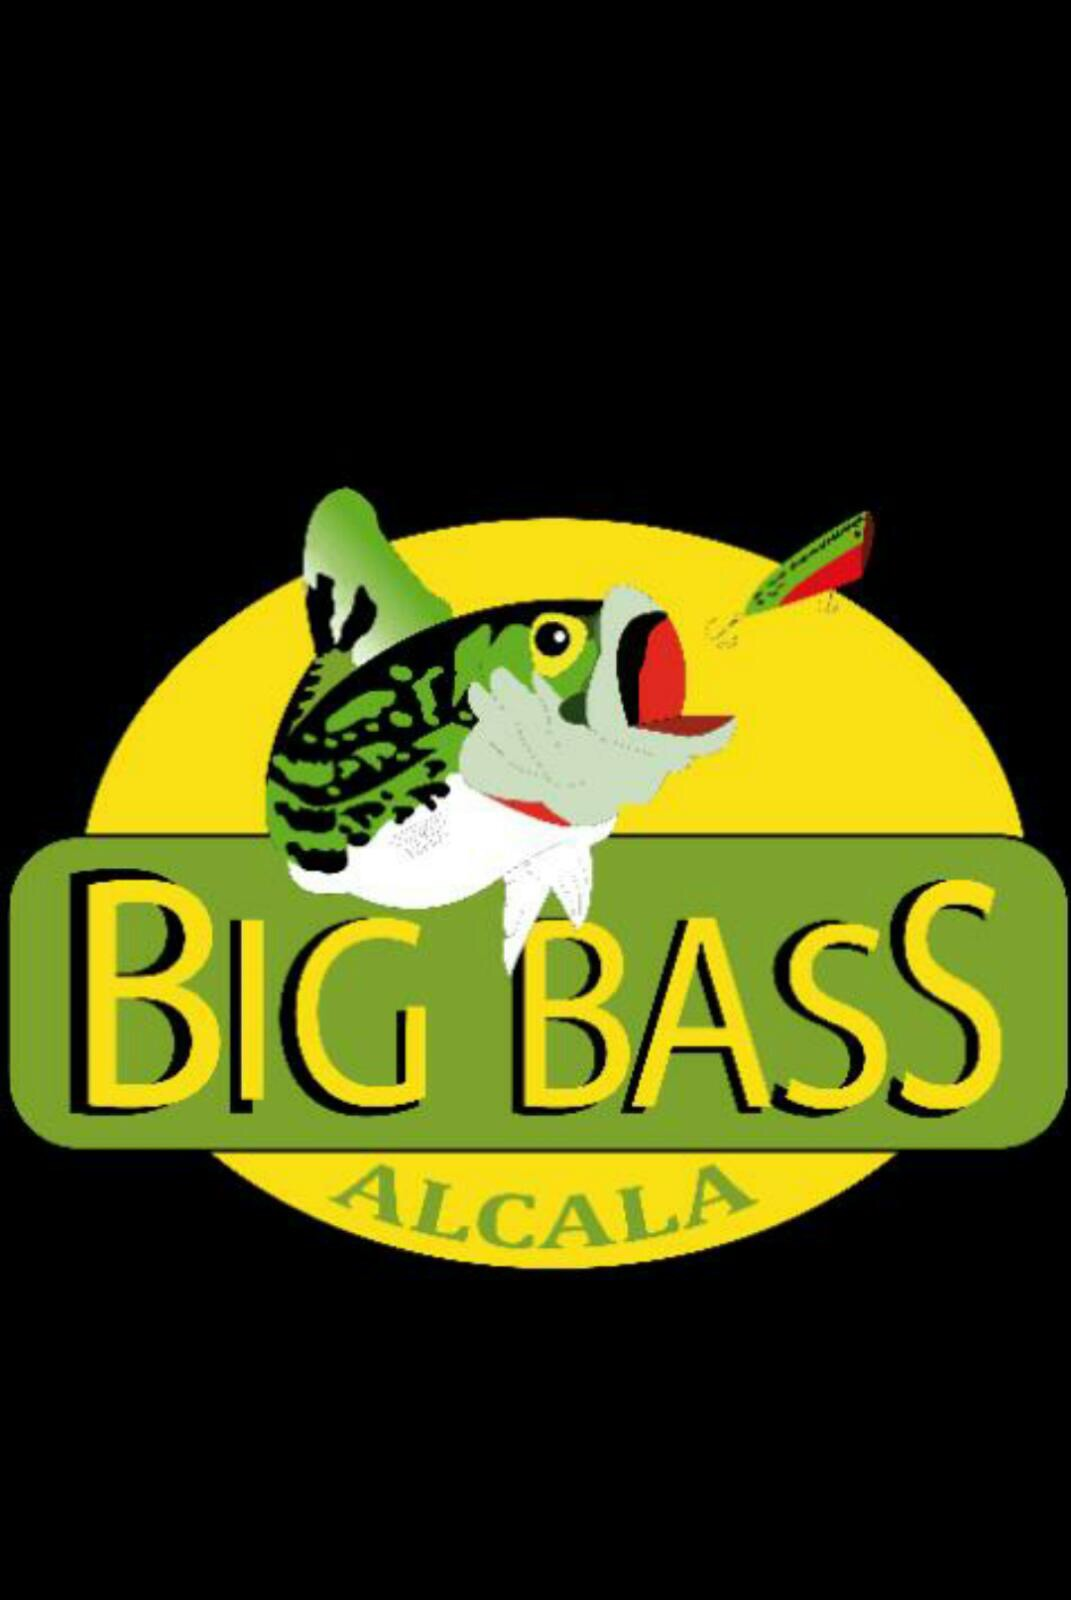 CLUB DE PESCA BIG BASS ALCALÁ- Mairena del Alcor (Sevilla)